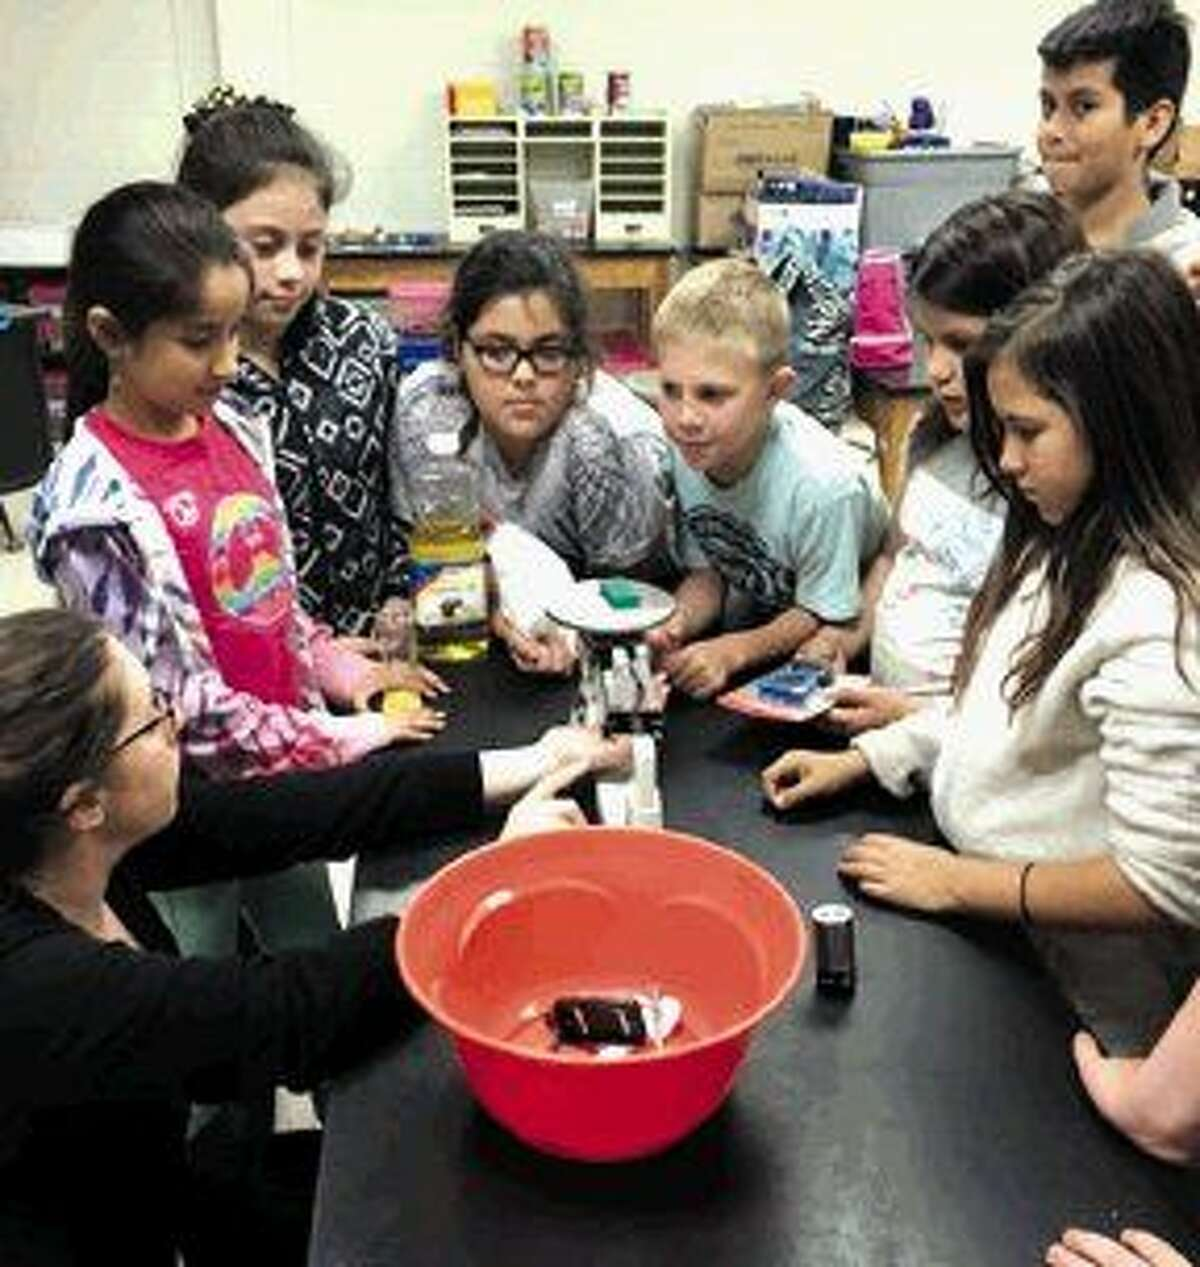 PCE teacher Wendy Miller, works with a group of fifth graders. They will spend three days a week over the next five weeks reviewing key points in science. Their goal is to be successful on their fifth grade STAAR science test.